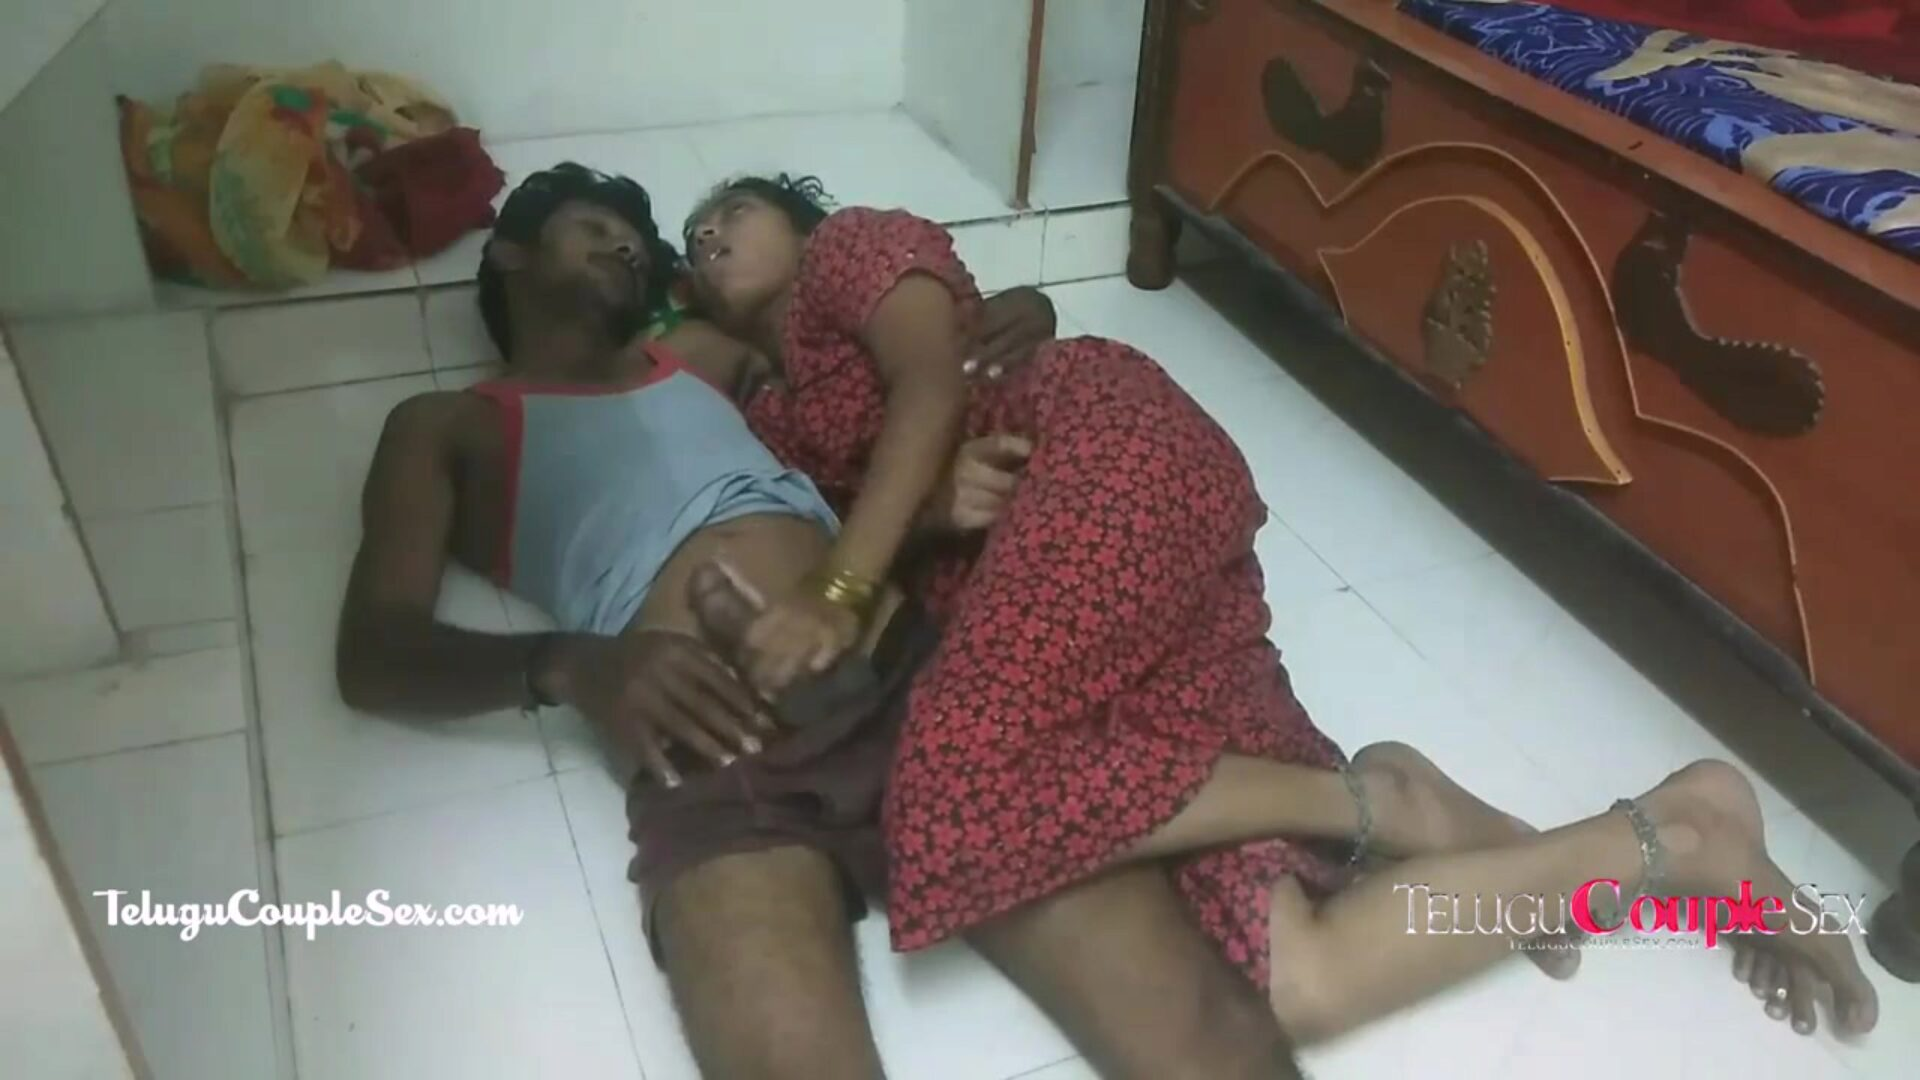 telugu village couple late night pumping with sexy desi wifey telugu village pair late night banging with hawt desi wifey